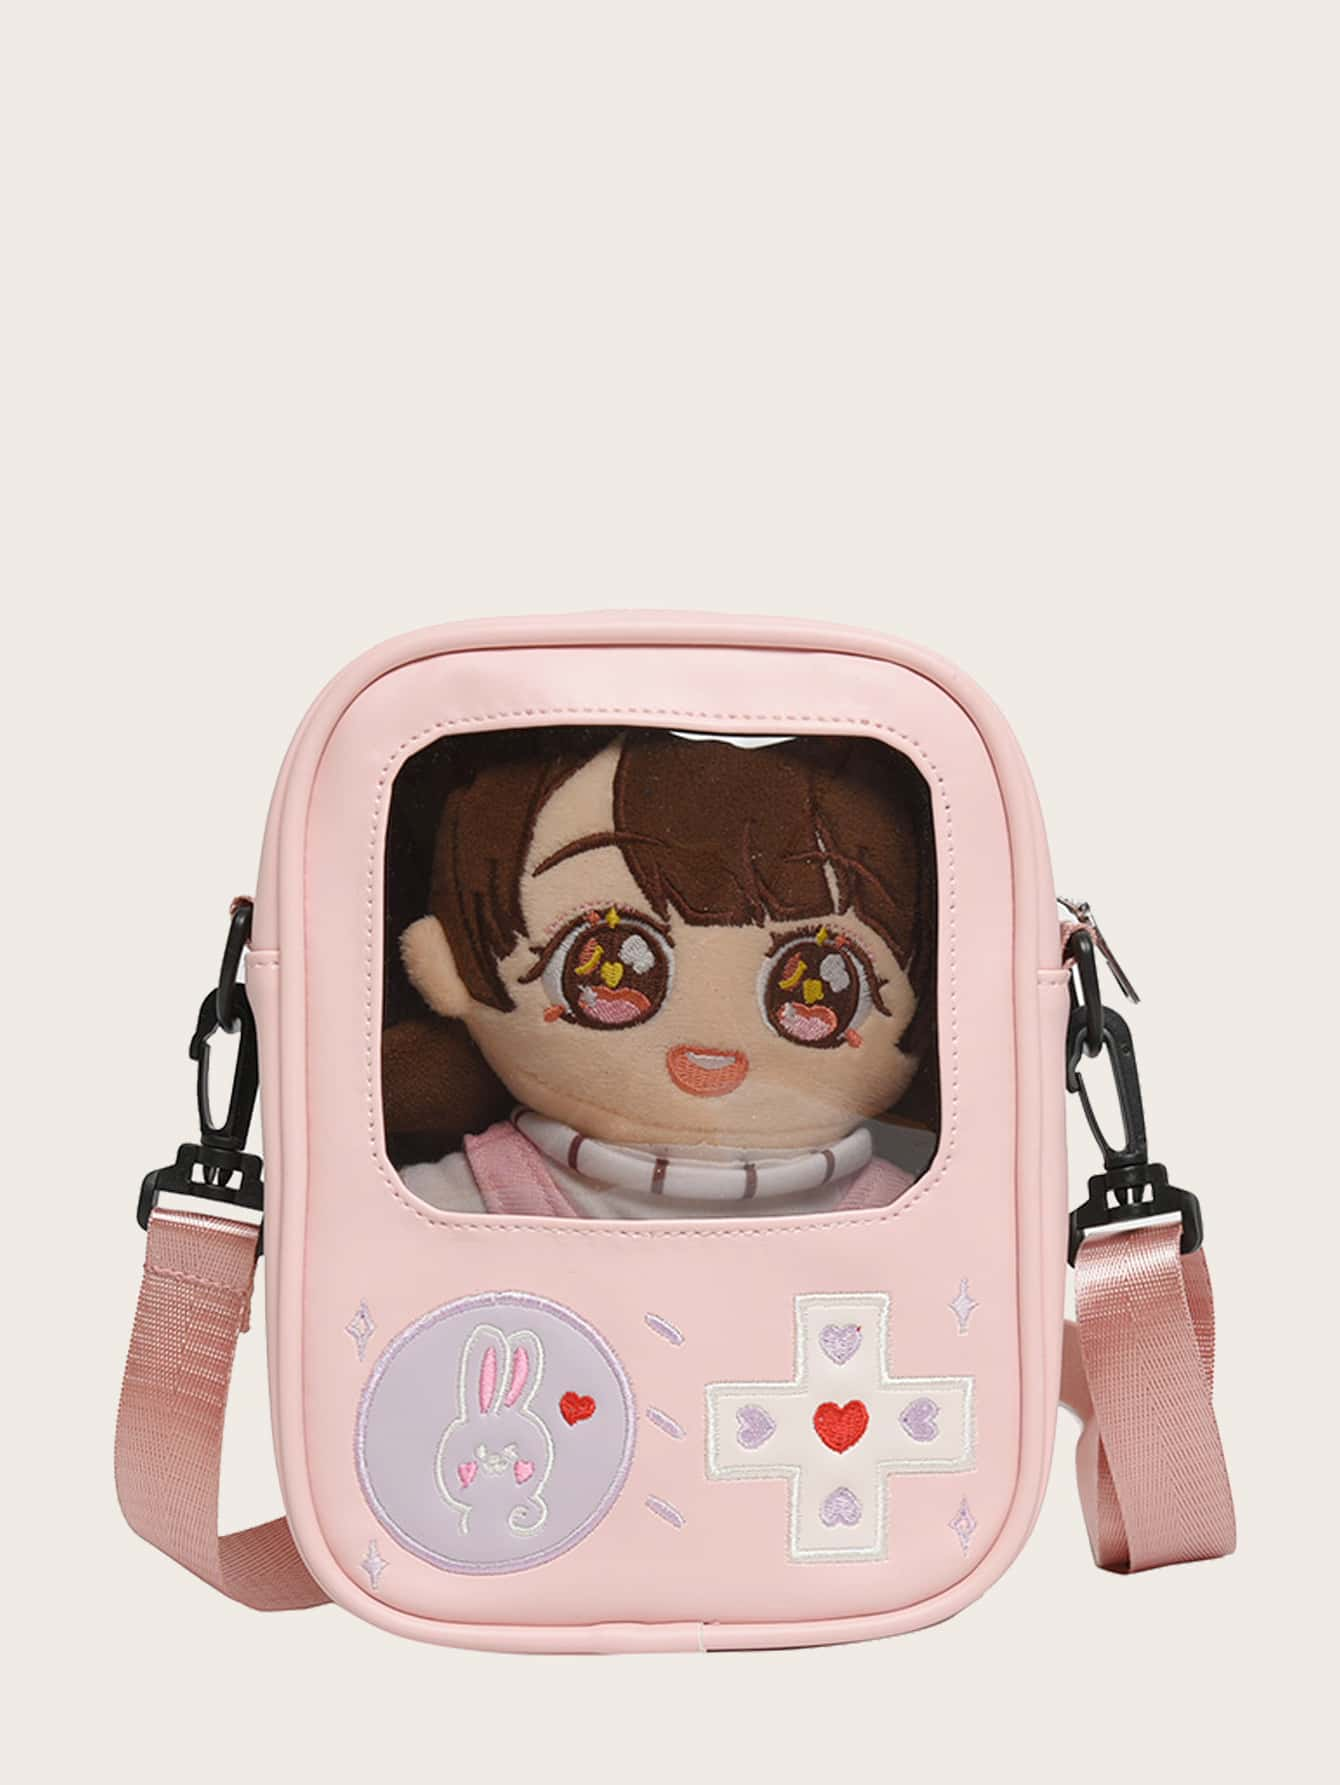 girls cartoon embroidery crossbody bag without doll